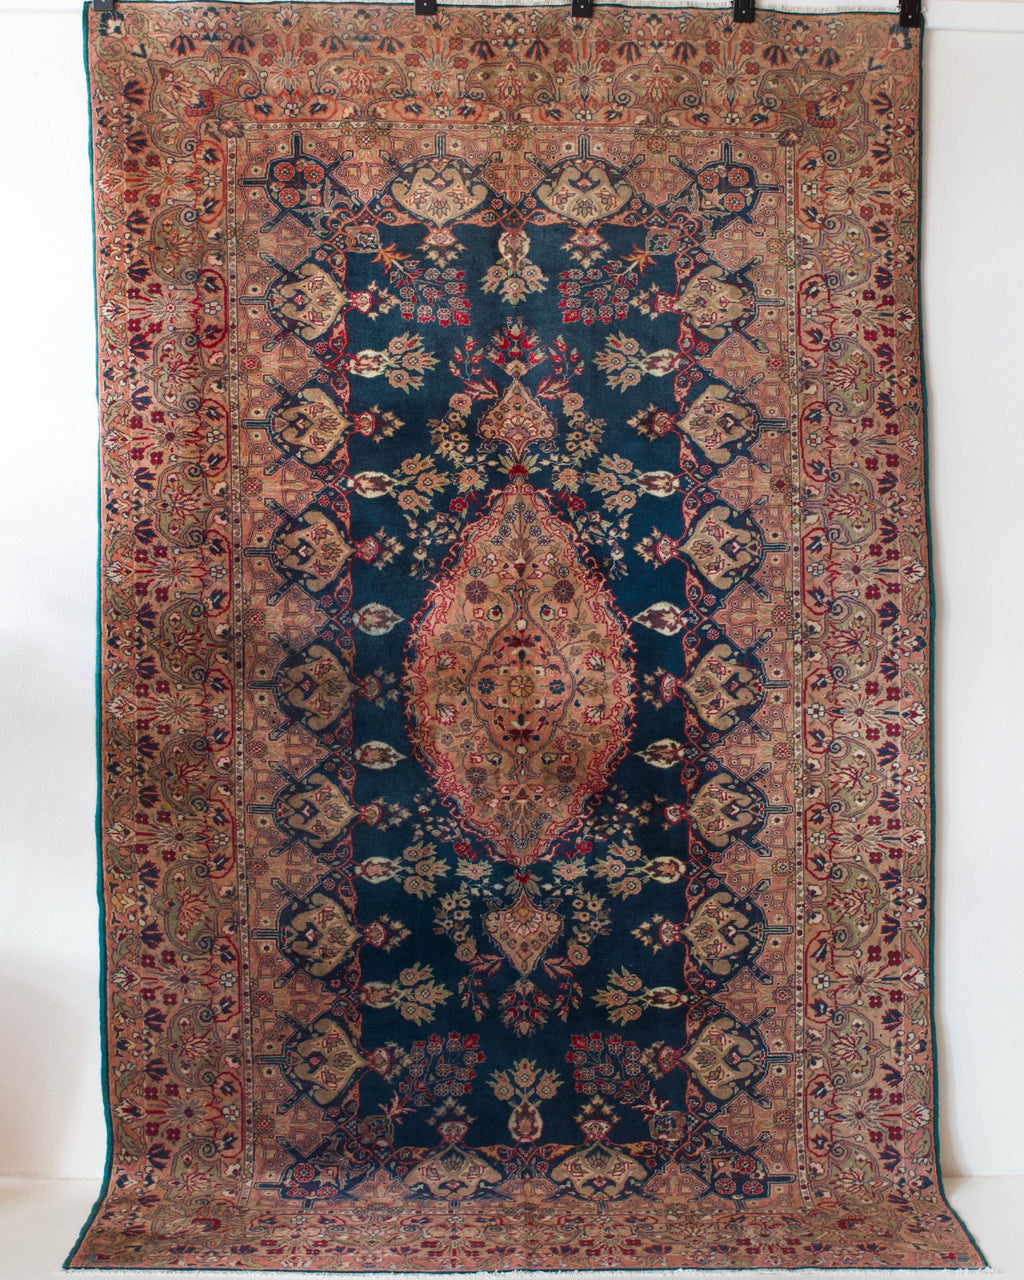 pile rug, Turkish rug, vintage rug, portland, rug shop, bright colors, wild shaman, soft rug, bold color, Portland, Oregon, rug store, rug shop, local shop, antique rug